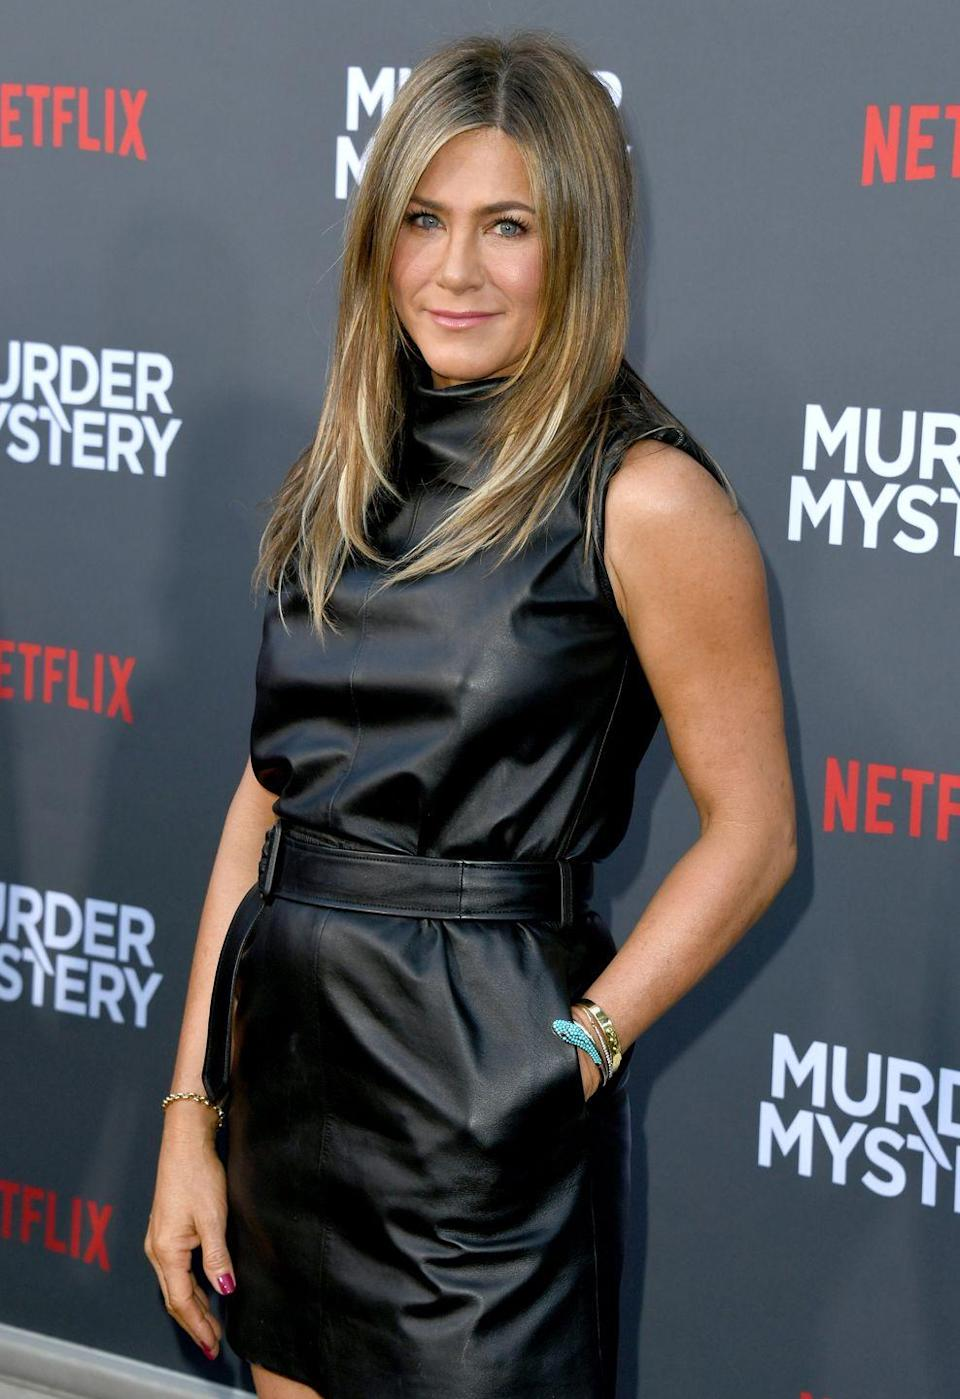 <p>Jennifer's success from <em>Friends</em> launched her into megastardom. She went on to star in hit movies like <em>Along Came Polly, </em><em>Marley & Me, </em>and <em>Horrible Bosses.</em> She also had very public marriages to Brad Pitt and Justin Theroux. Today, the A-lister is one of Hollywood's highest paid actresses and recently starred in and produced Apple's upcoming show, <em>The Morning Show. </em></p>